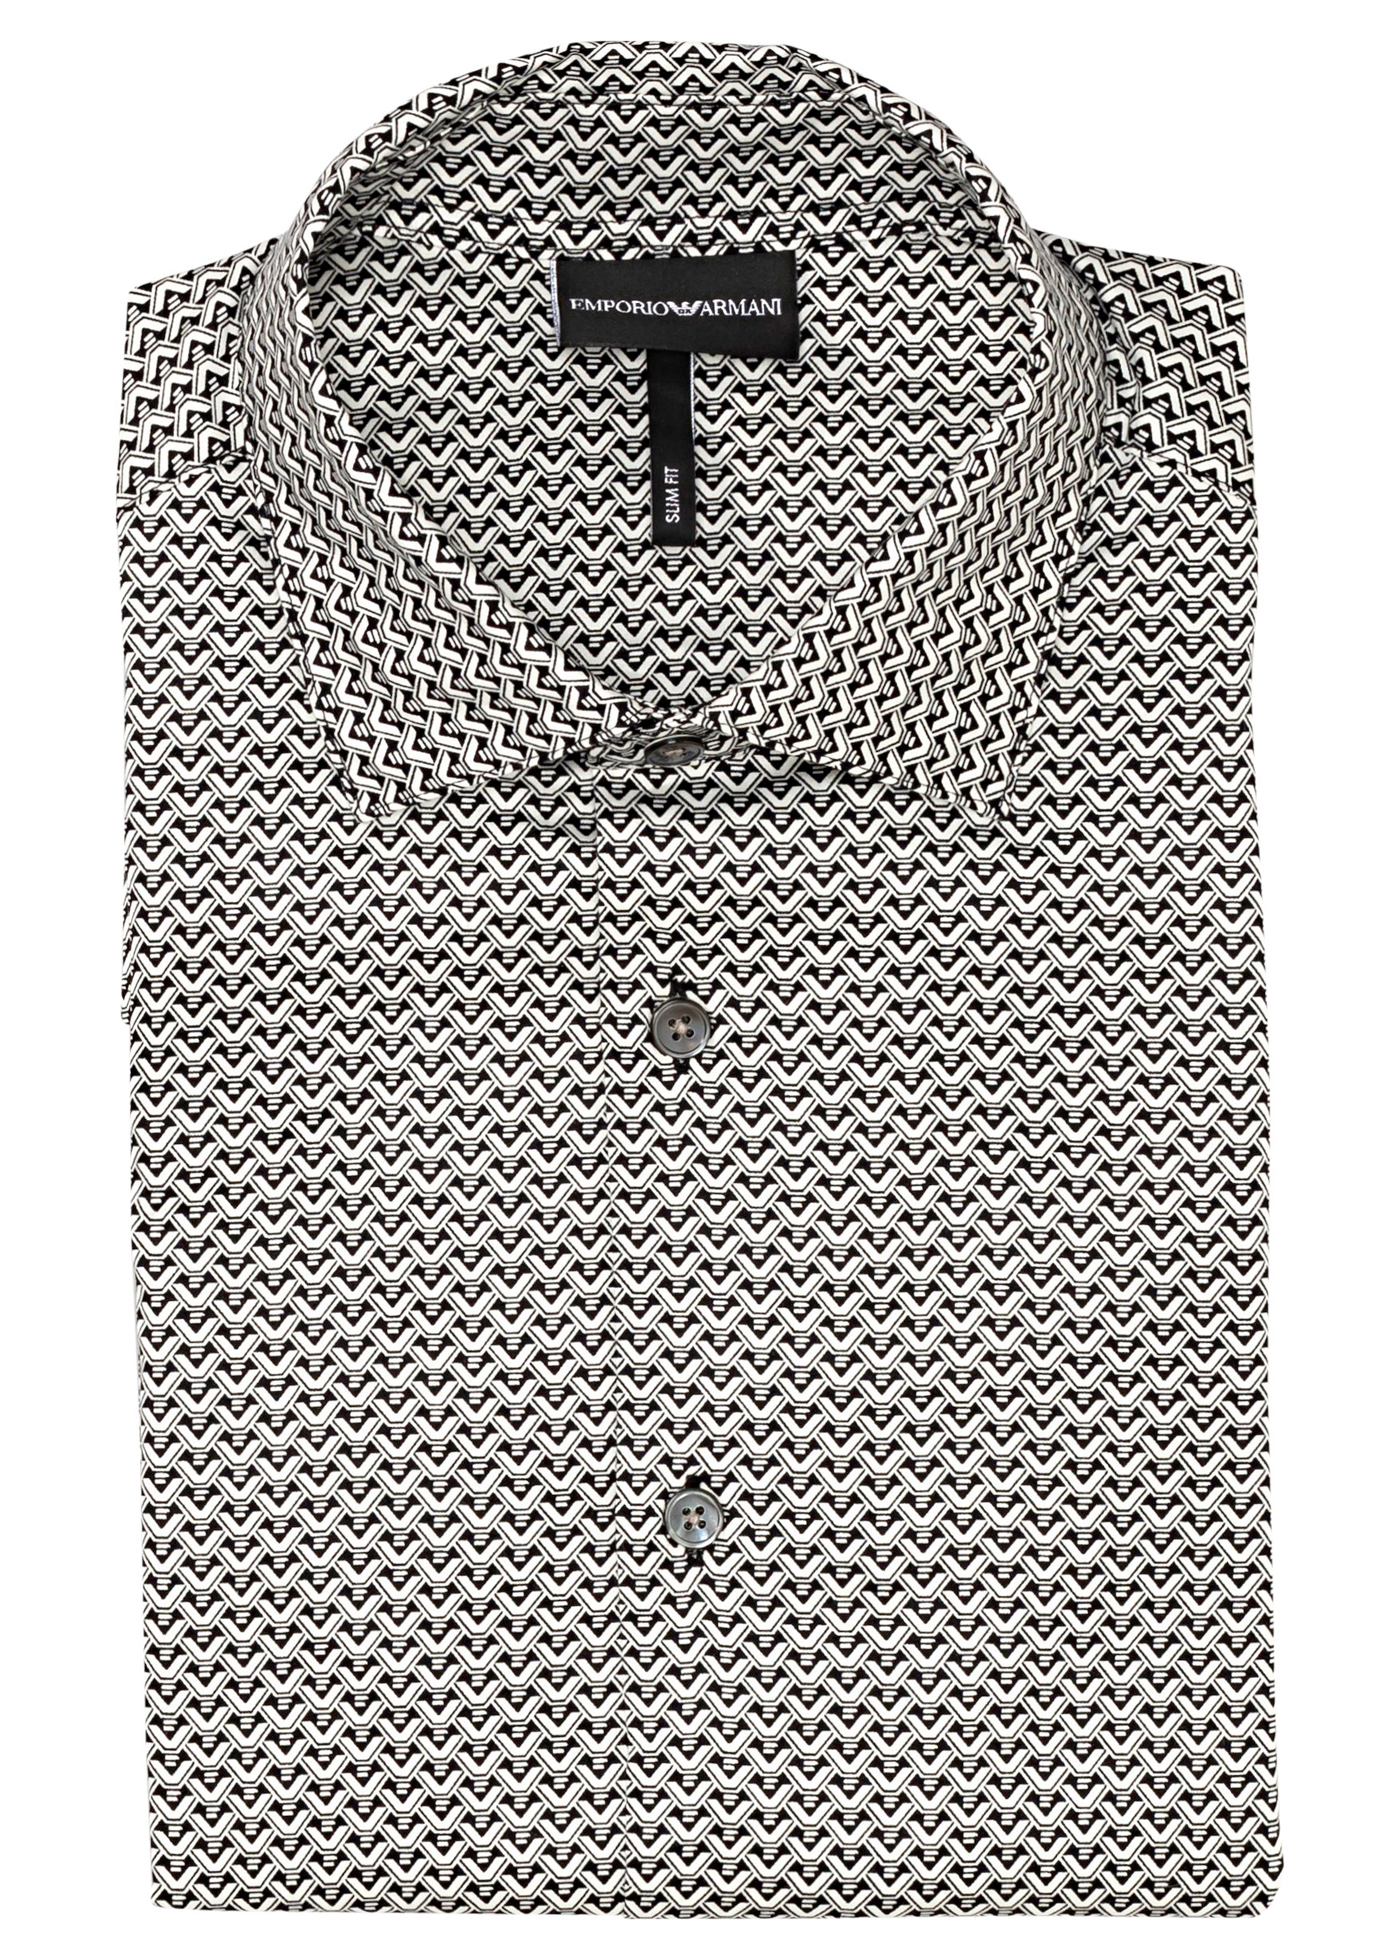 CAMICIA image number 0